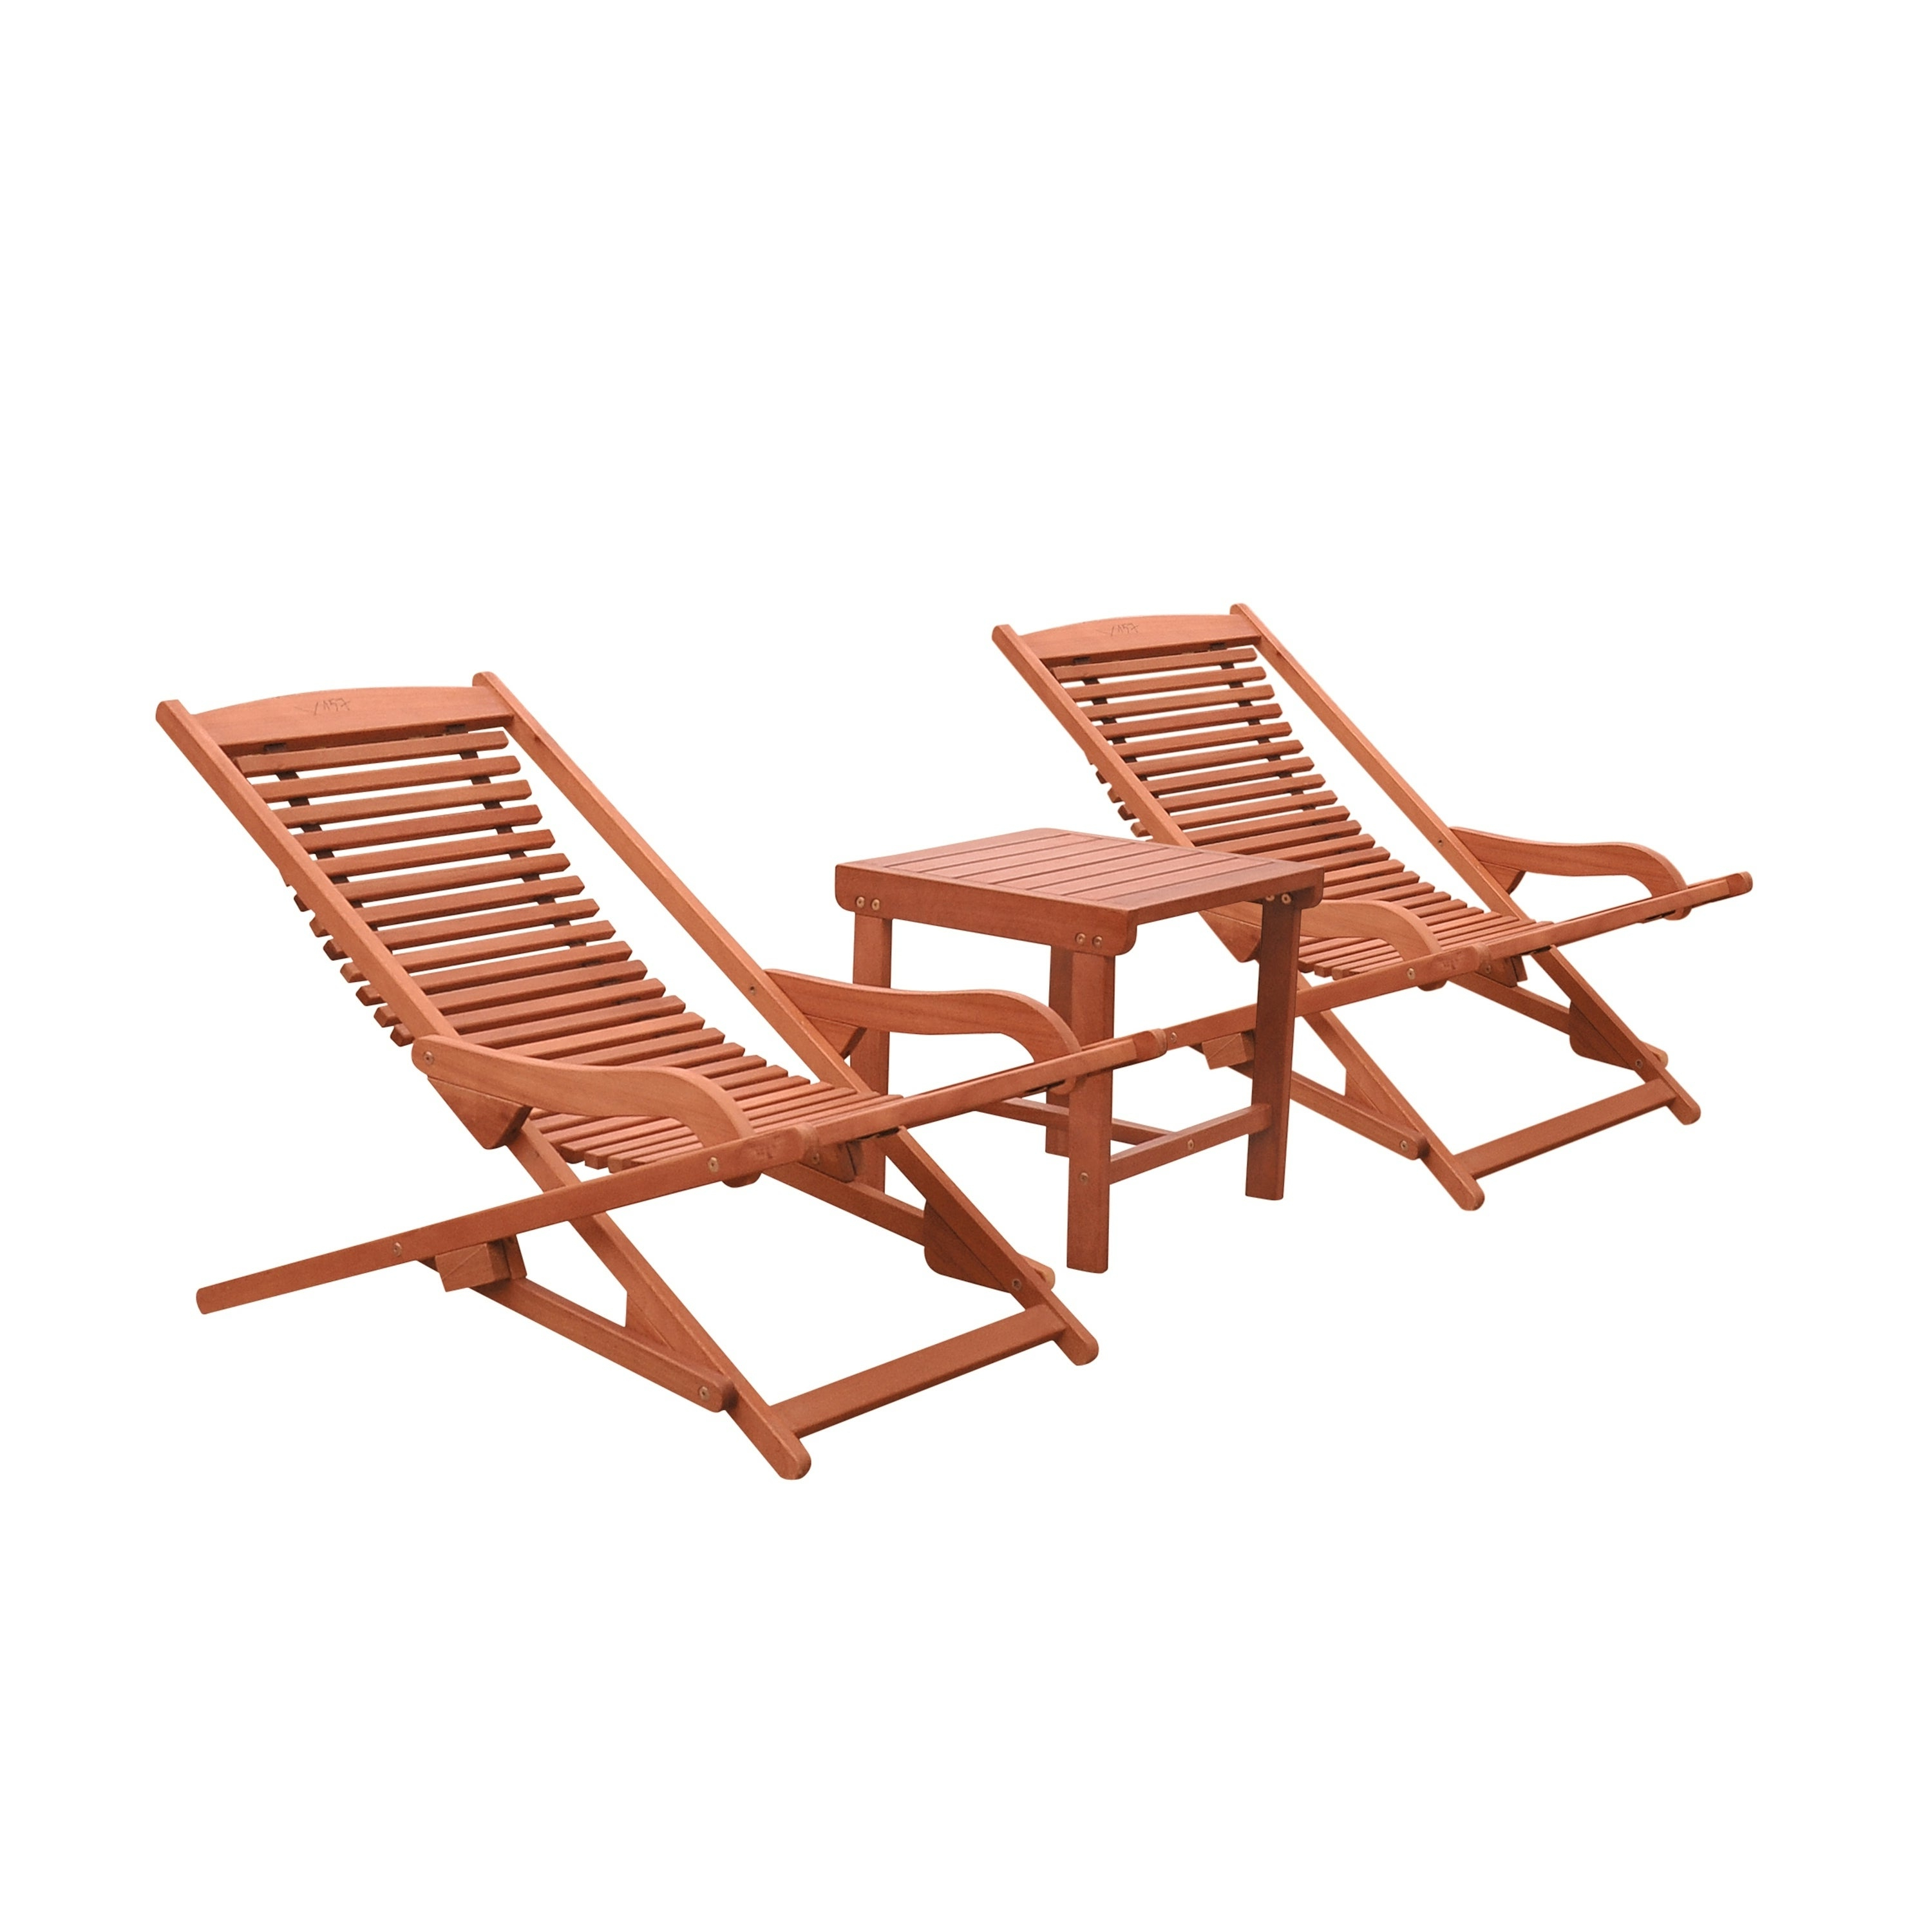 Havenside Home Surfside Wood Outdoor Patio Chaise Lounge Set Regarding 2019 Havenside Home Surfside Relaxer Chaise Lounges (View 14 of 25)